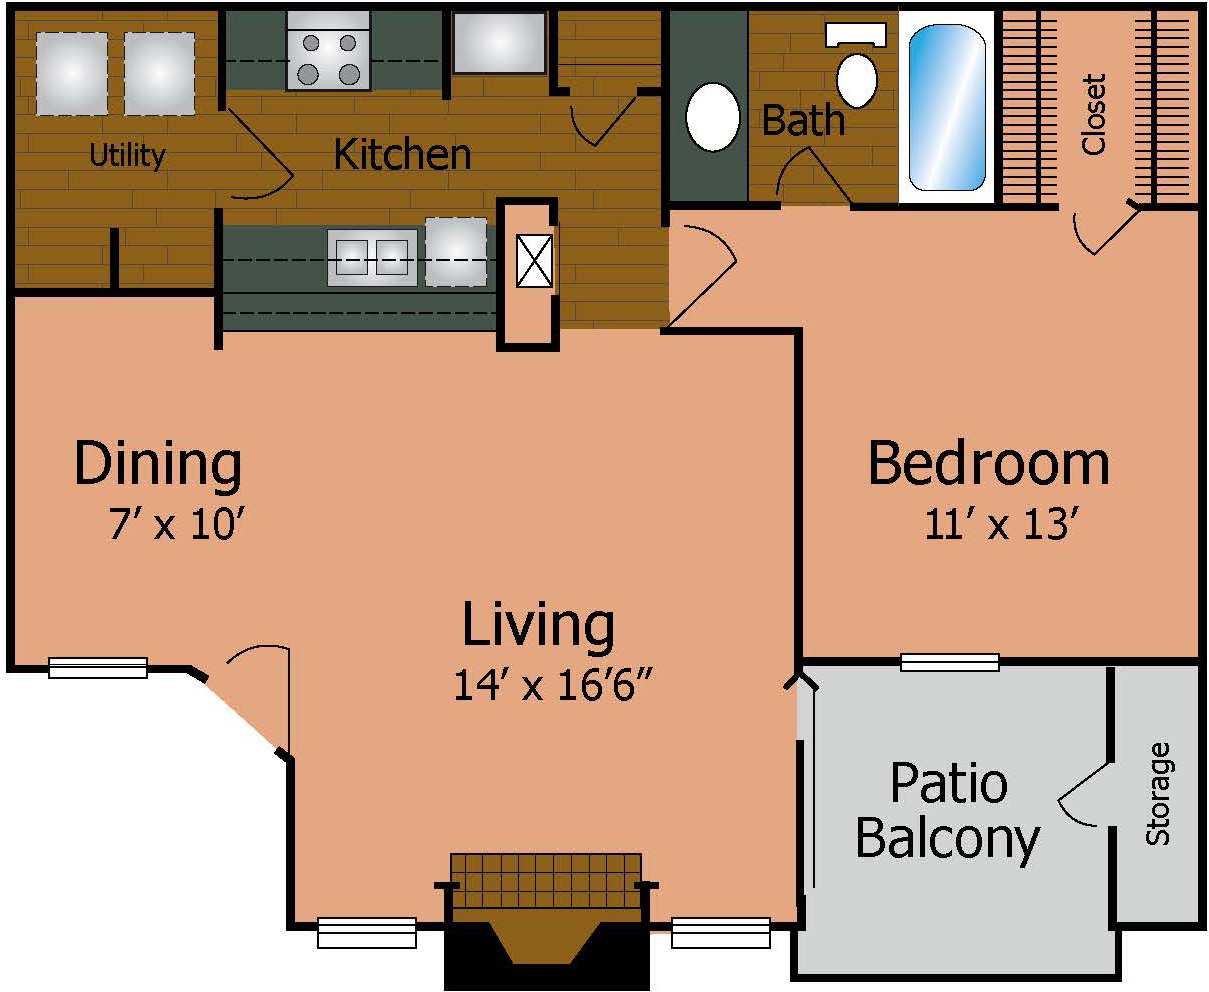 Floorplan - The Premier image